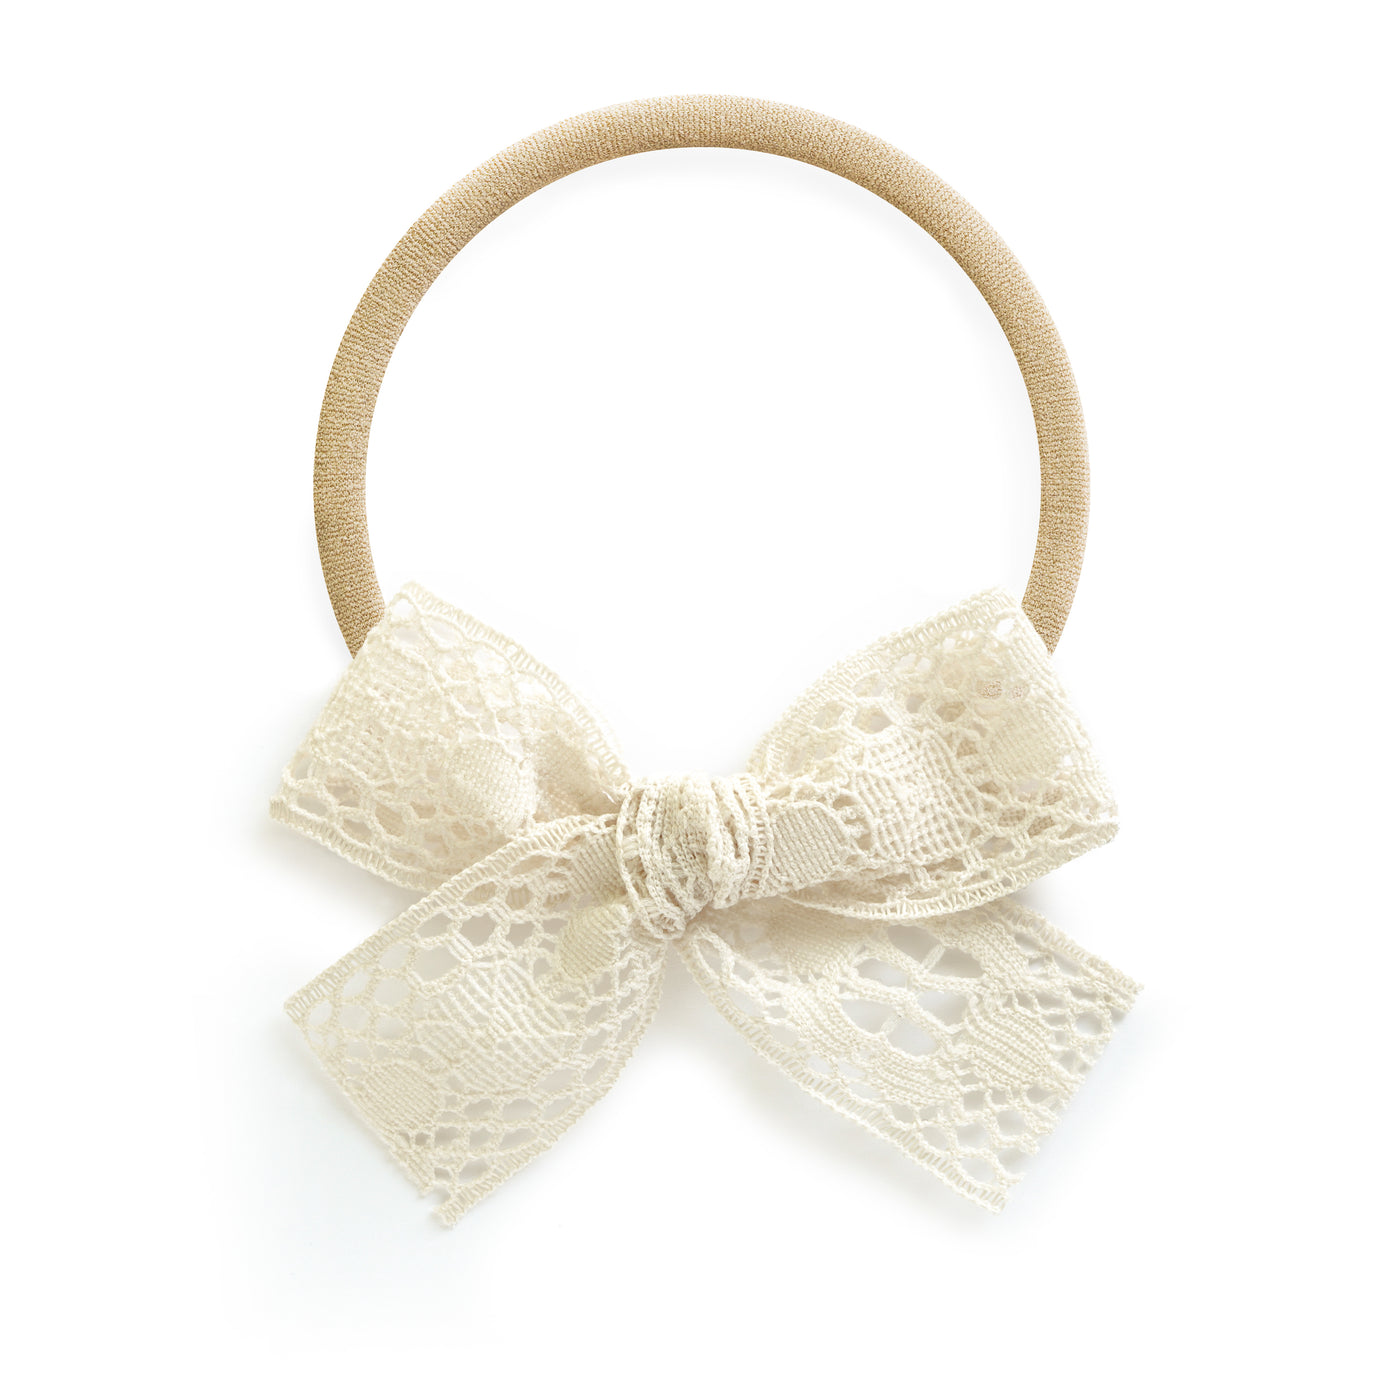 Cream Ivory Lace village baby and little girl bow stretch nylon headband newborn infant toddler